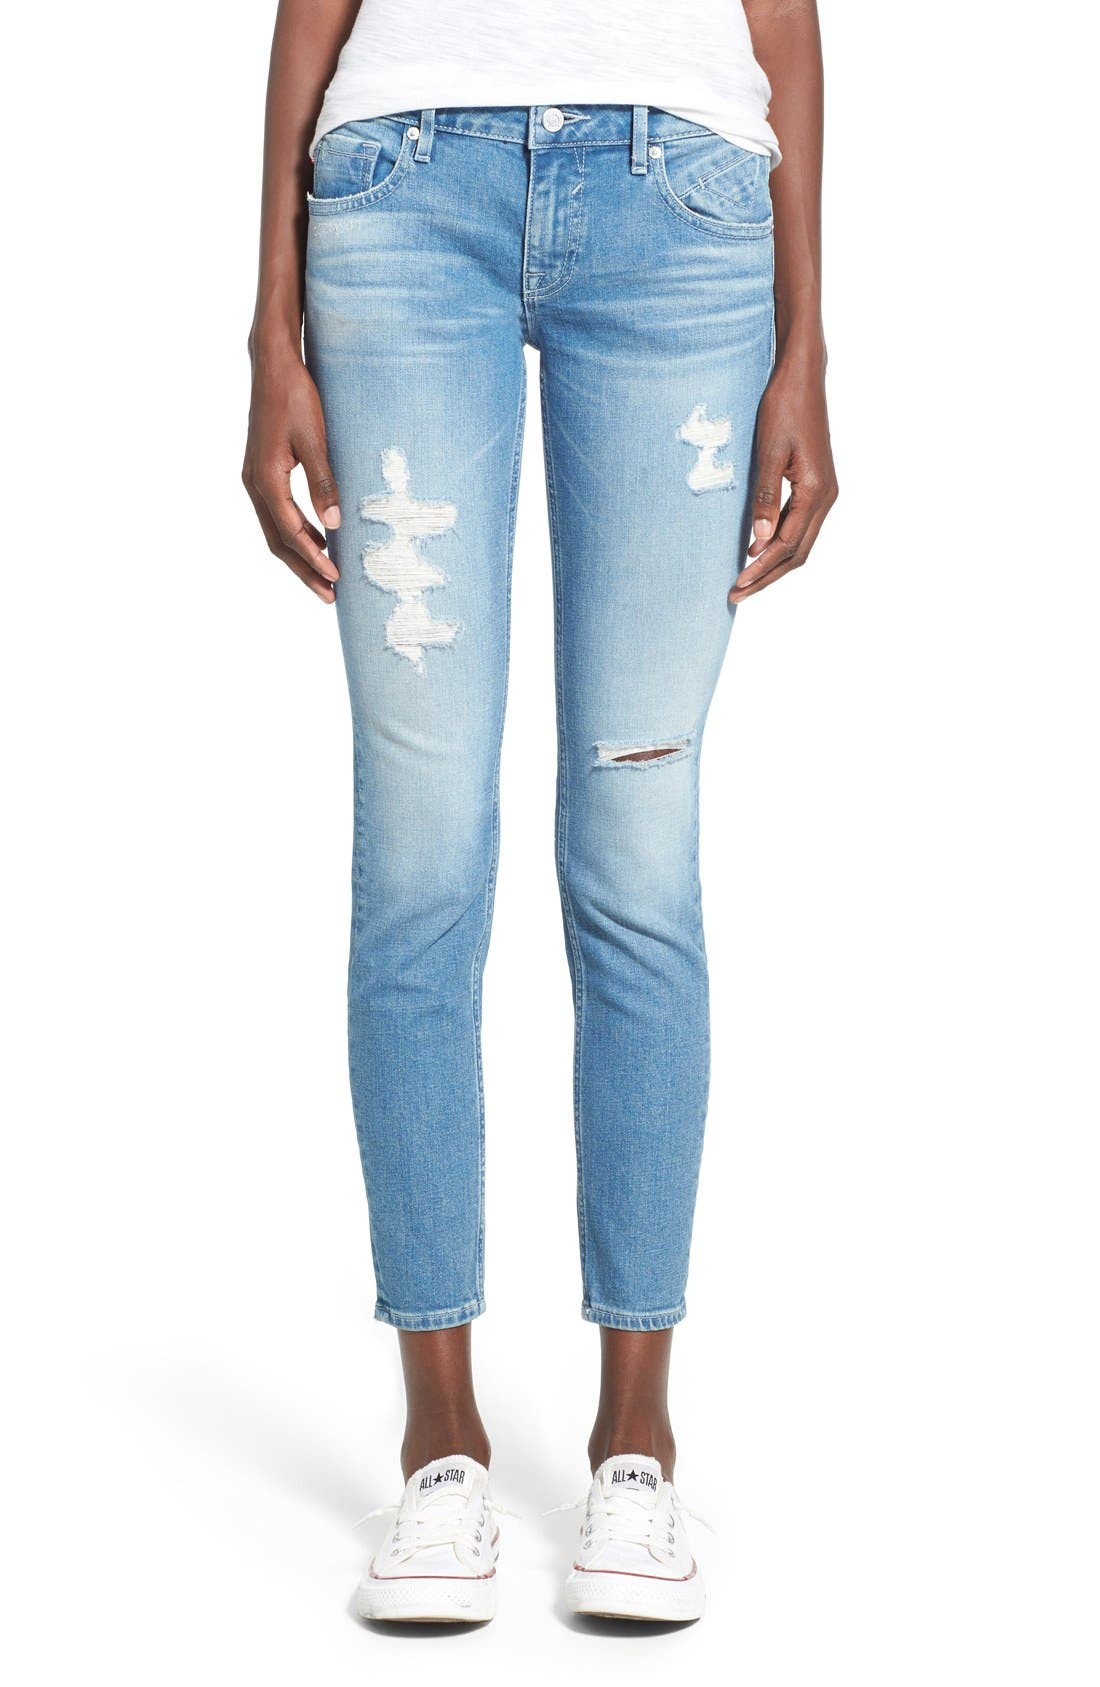 Alternate Image 1 Selected - Vigoss 'Chelsea' Super Skinny Jeans (Light Wash)